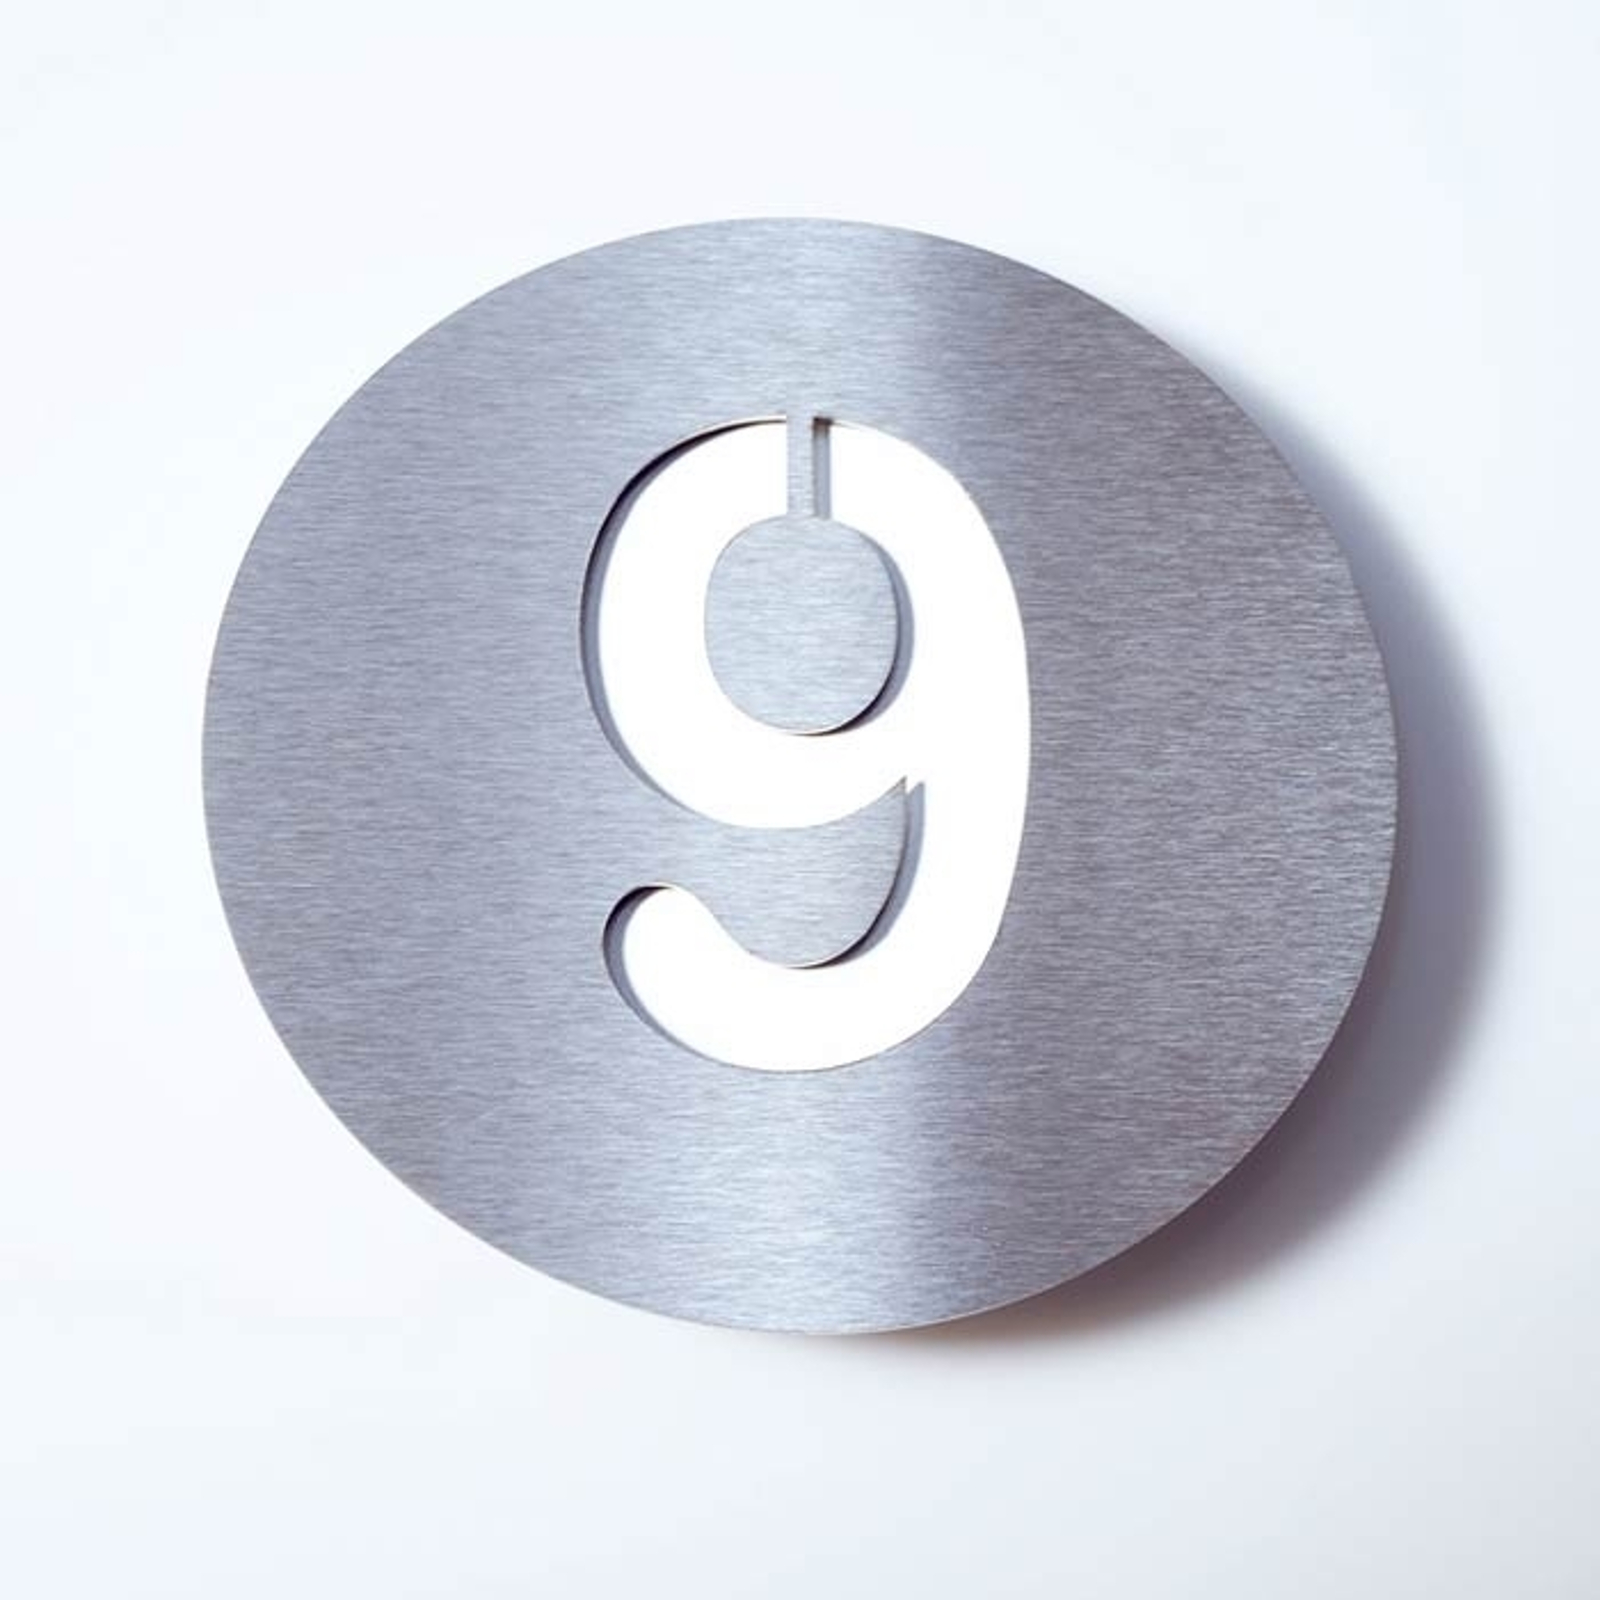 Stainless steel house number Round_1057087_1